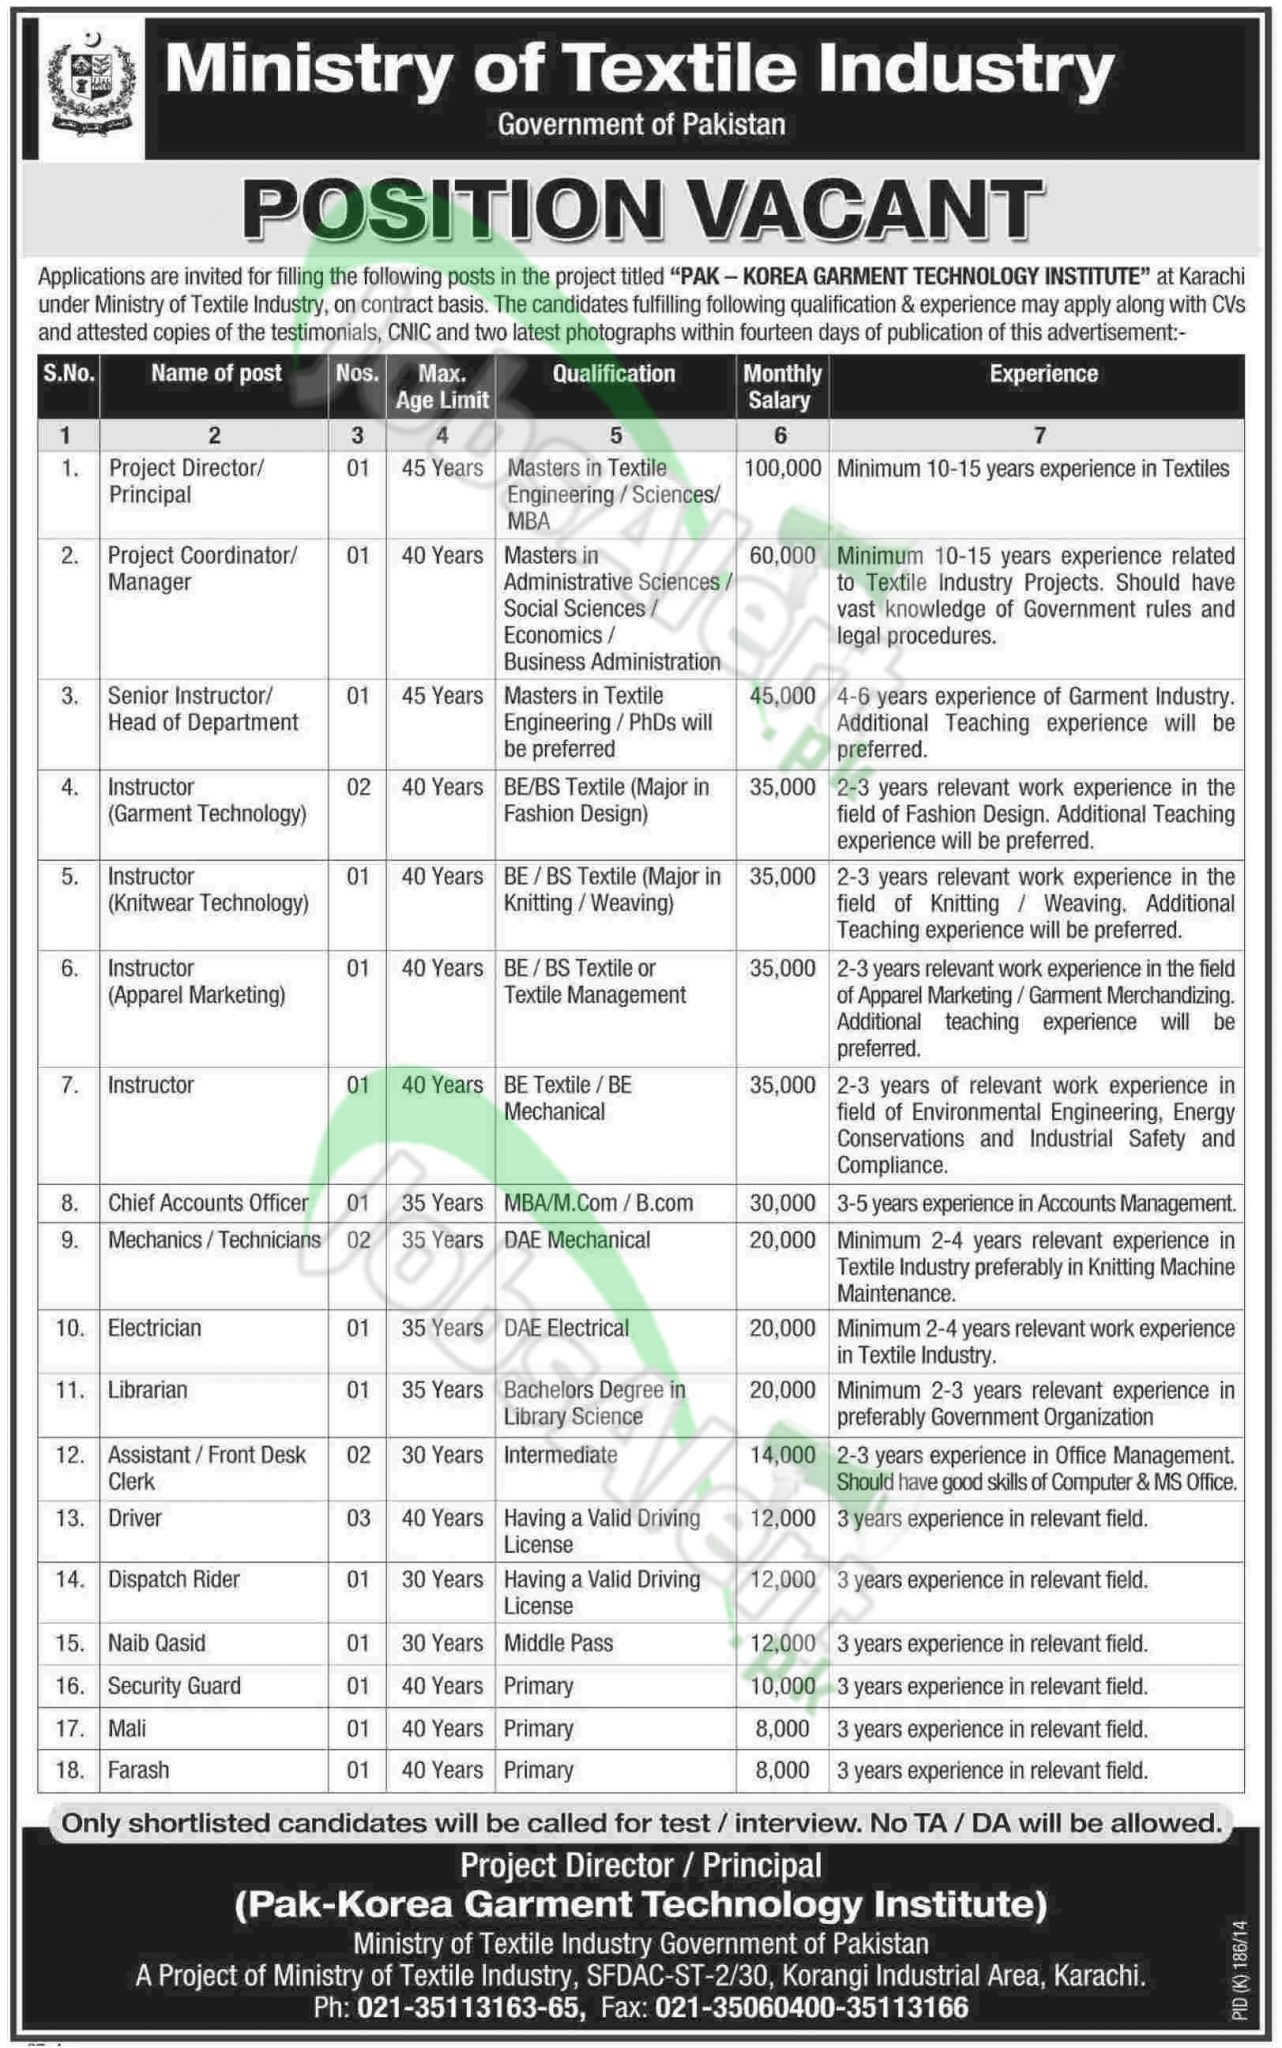 Ministry of Textile Industry Karachi